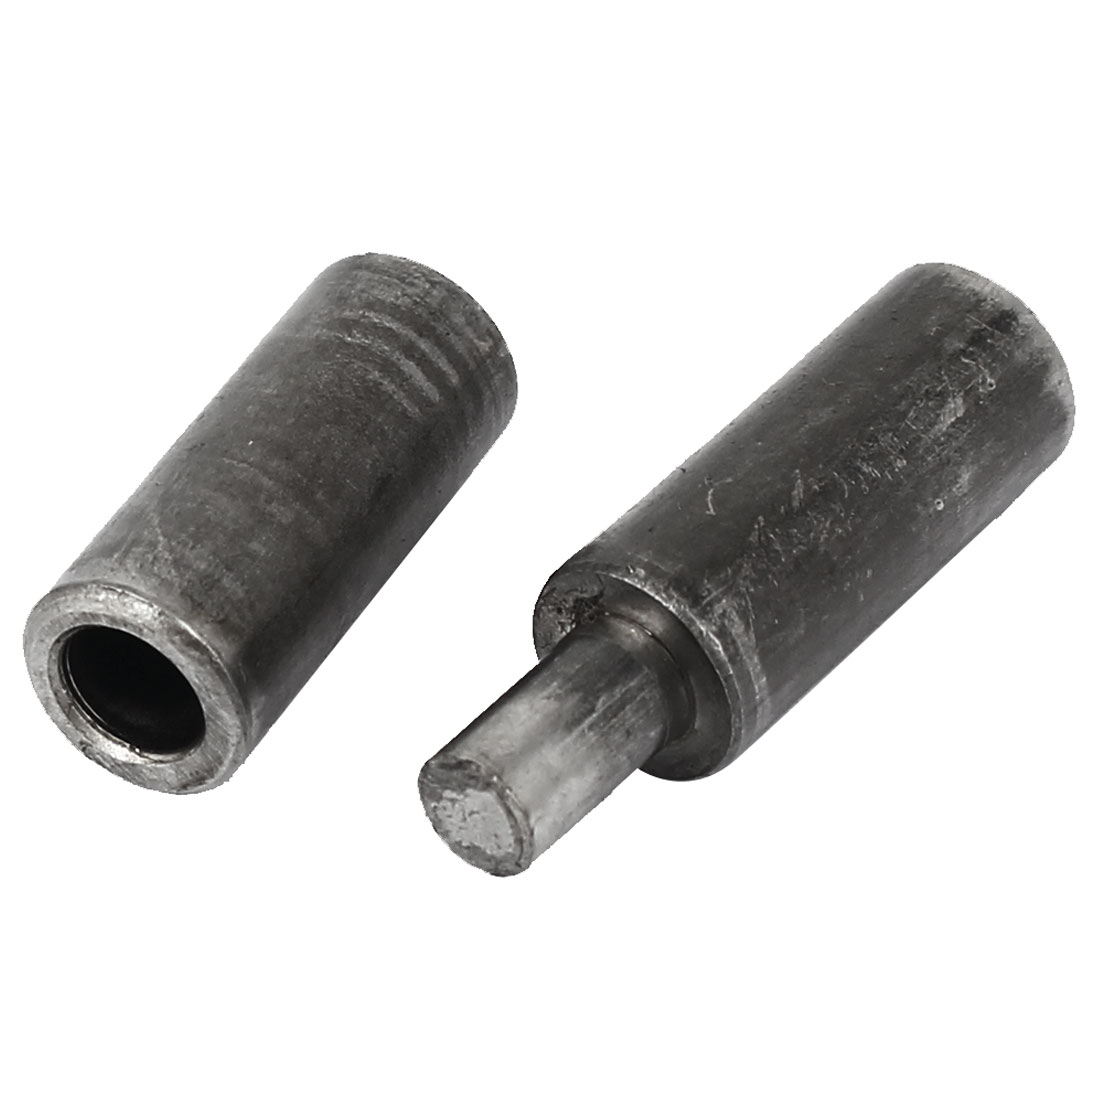 Home Gate Door Window Part Male to Female Steel Hinge Pin 49mmx10mm 10 Pairs - image 1 of 2